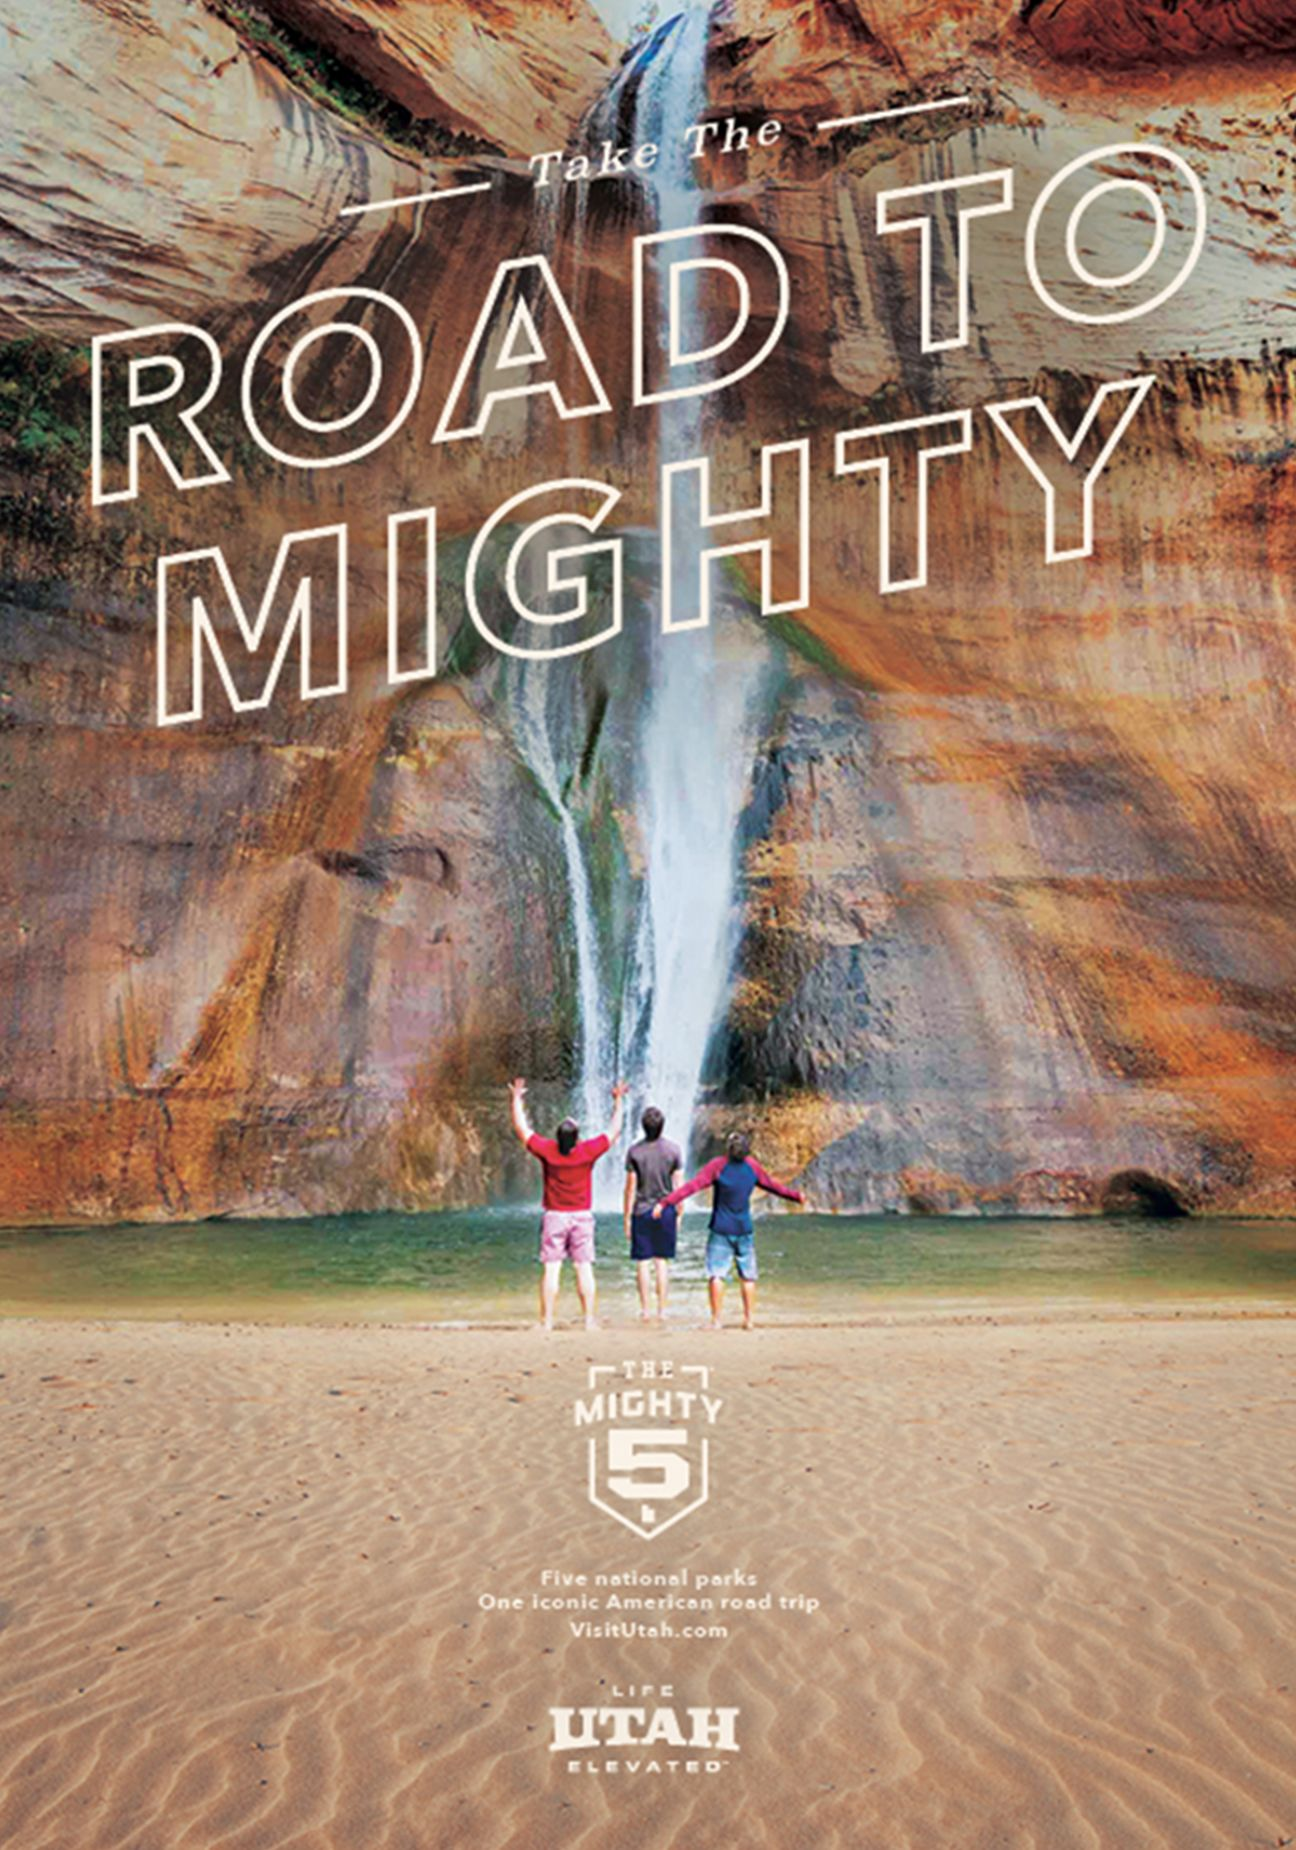 Road to Mighty advertisement with waterfall